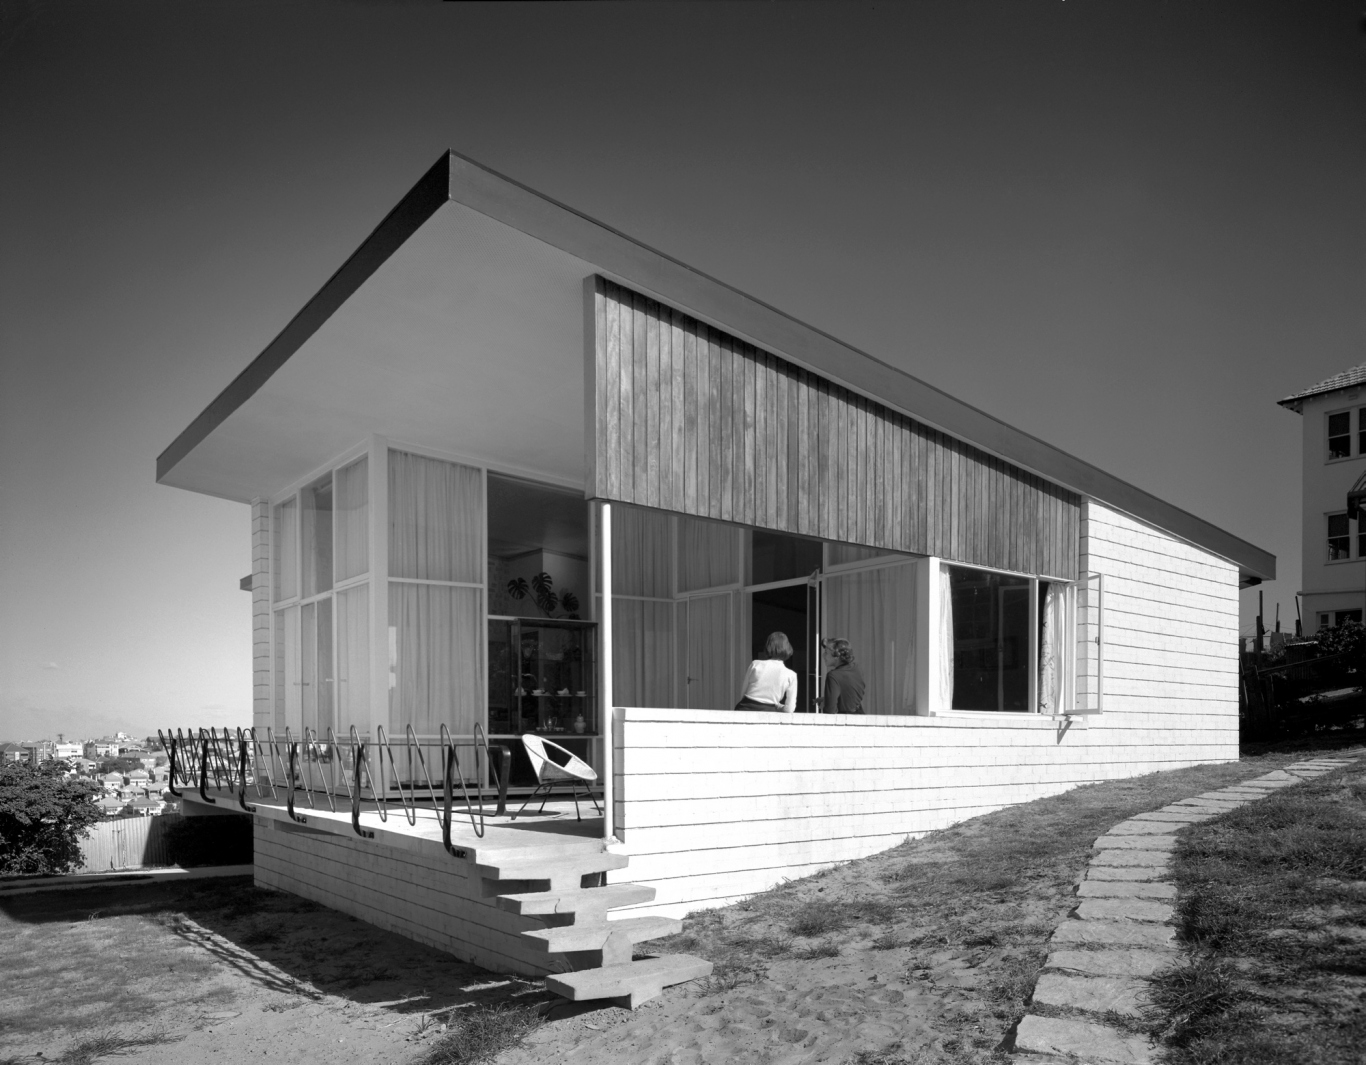 Black and white photo of exterior of Modernist house